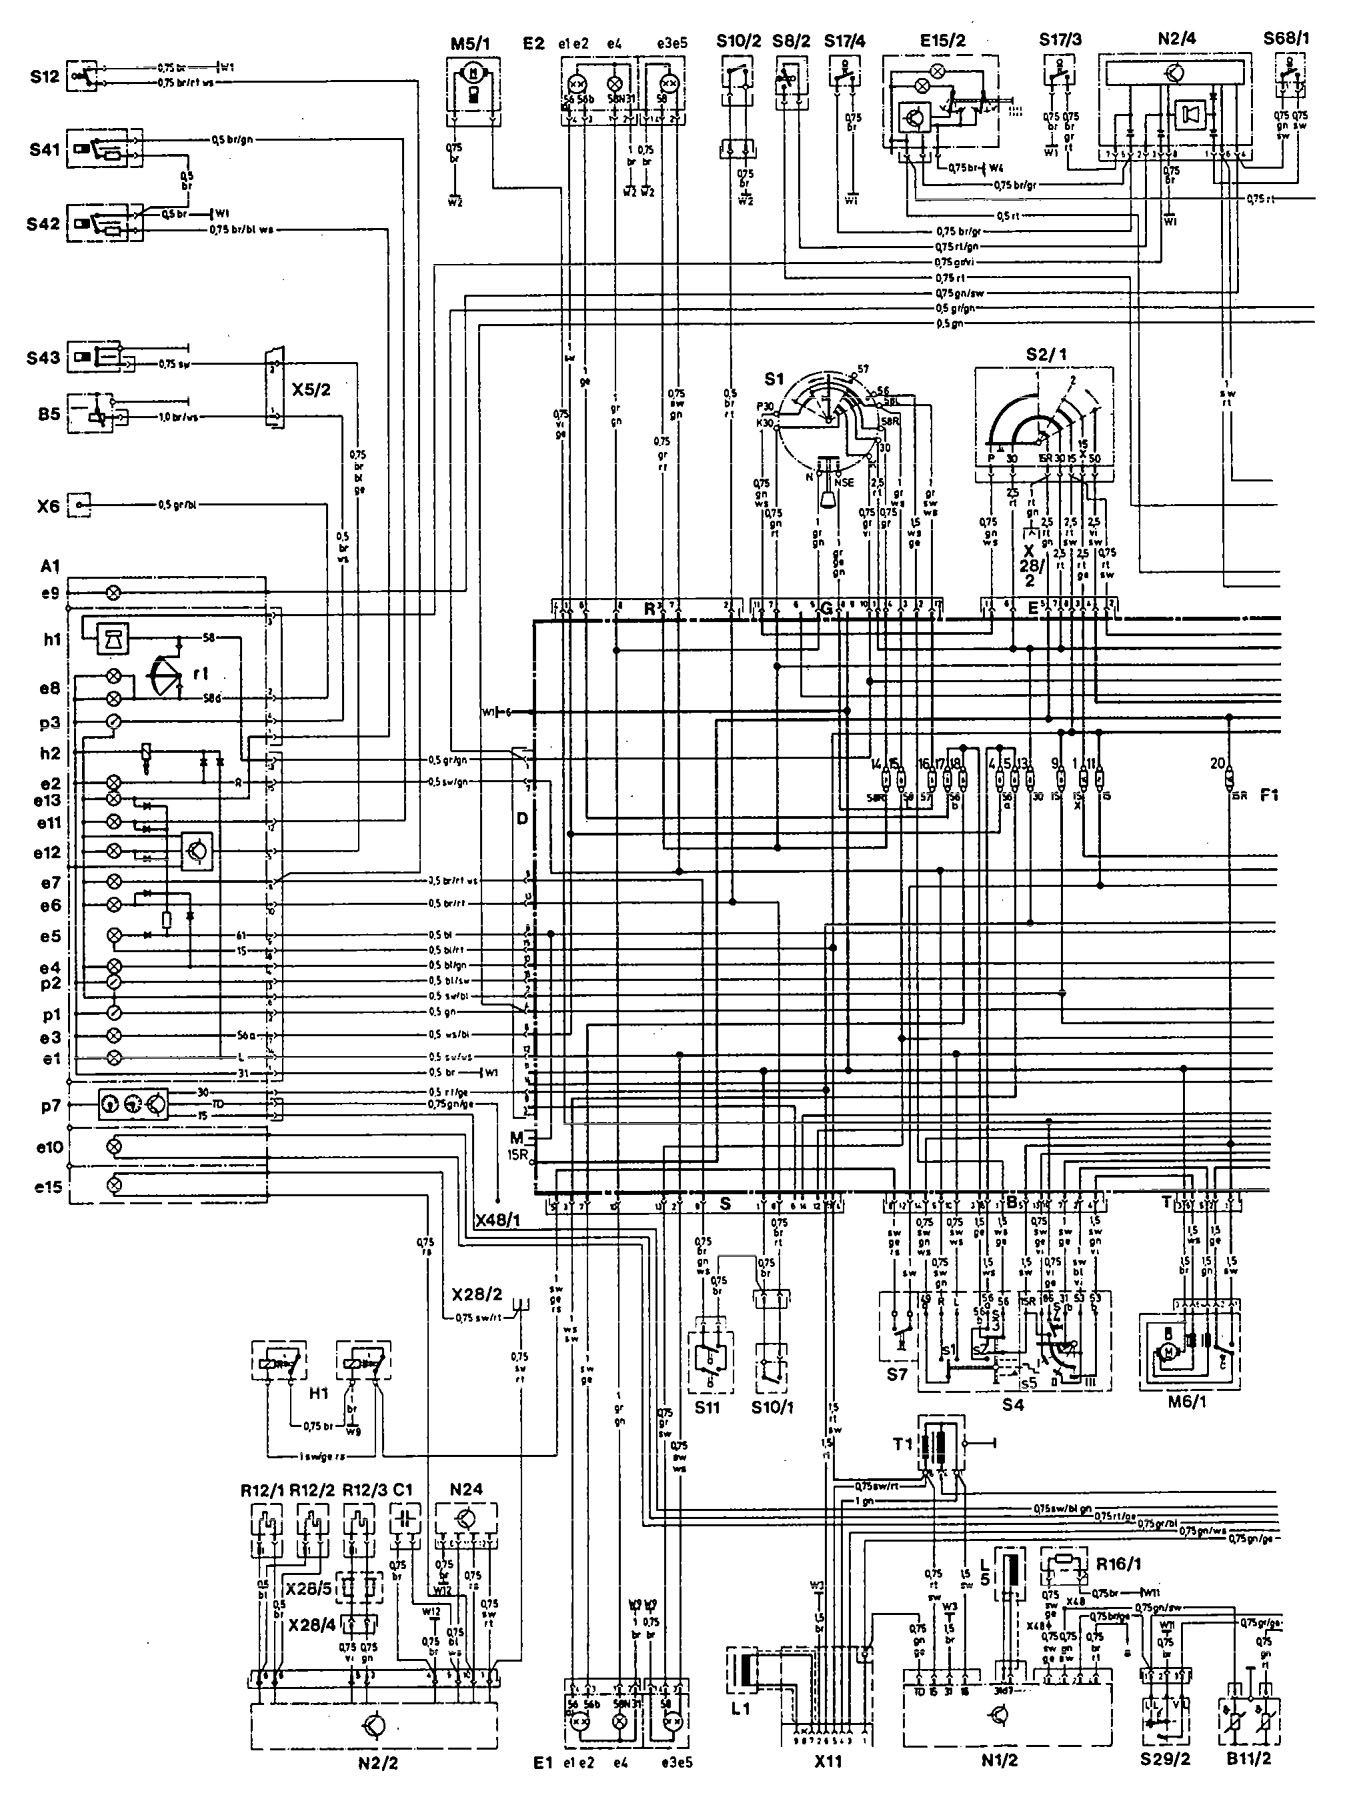 mercedes benz 190e electrical wiring diagram - wiring diagram var  thick-notice - thick-notice.viblock.it  viblock.it